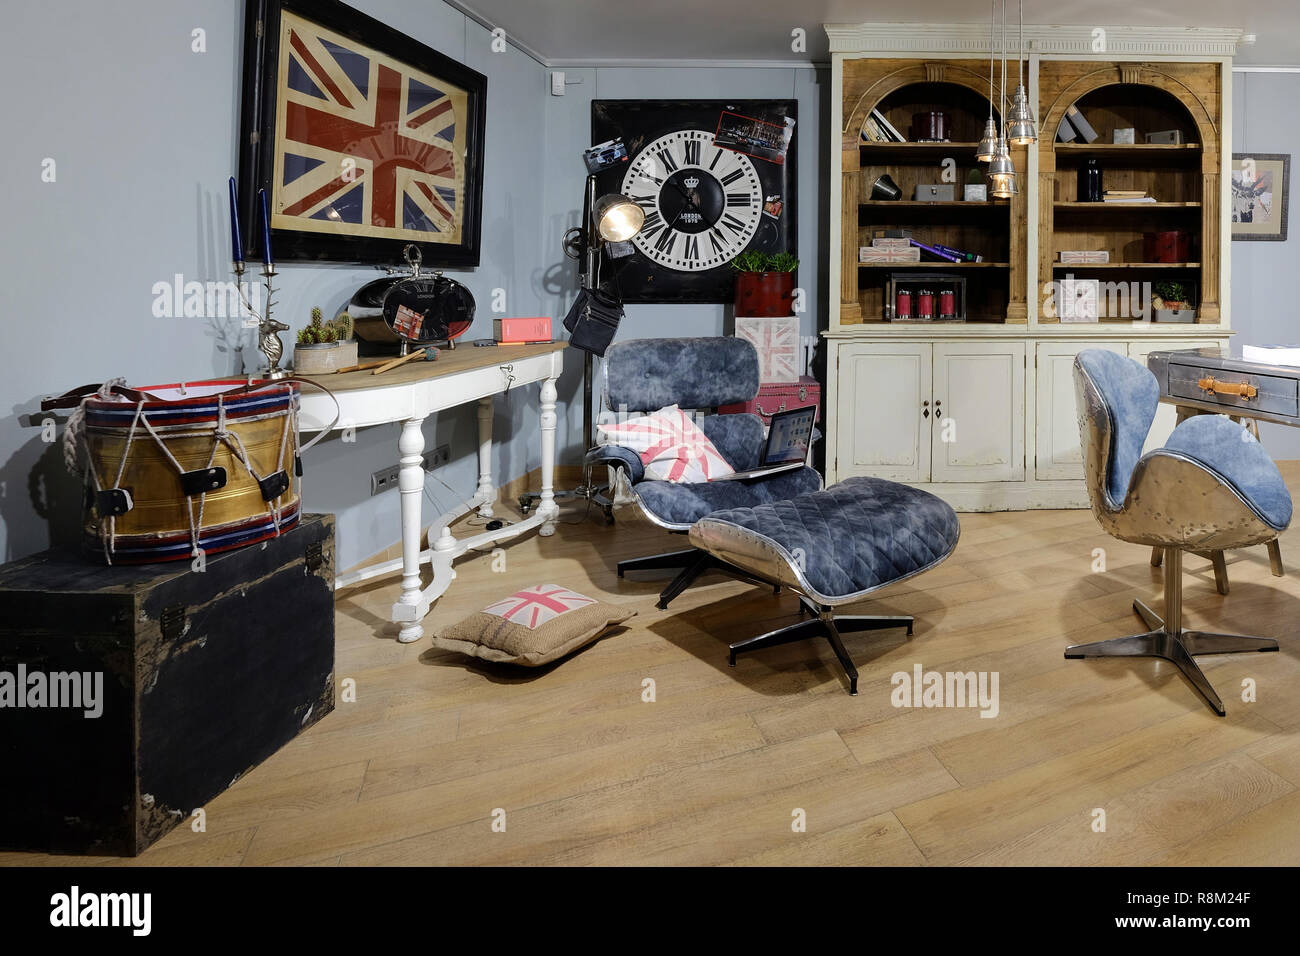 Concept of interior of the room where lives translator. Interior of the room in the style of interpreter. - Stock Image